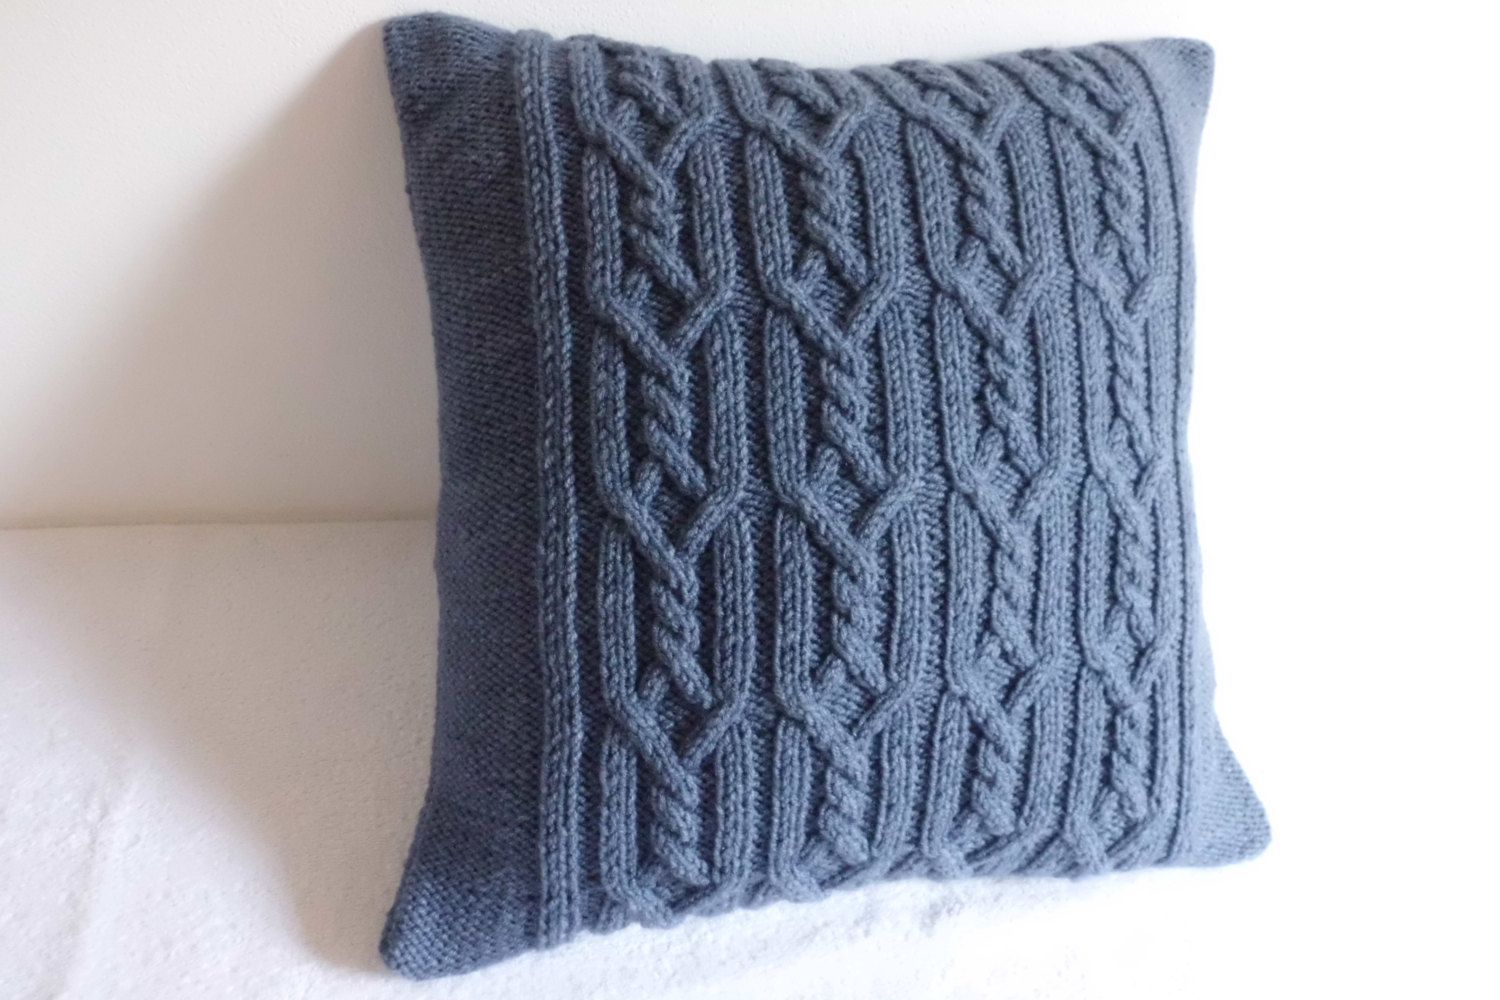 Cable Knit Decorative Steel Blue Pillow Blue Gray Throw Pillow Hand Knit Pillow Case Hand Knit Cushio Knitted Cushions Knitted Cushion Covers Knitted Throws